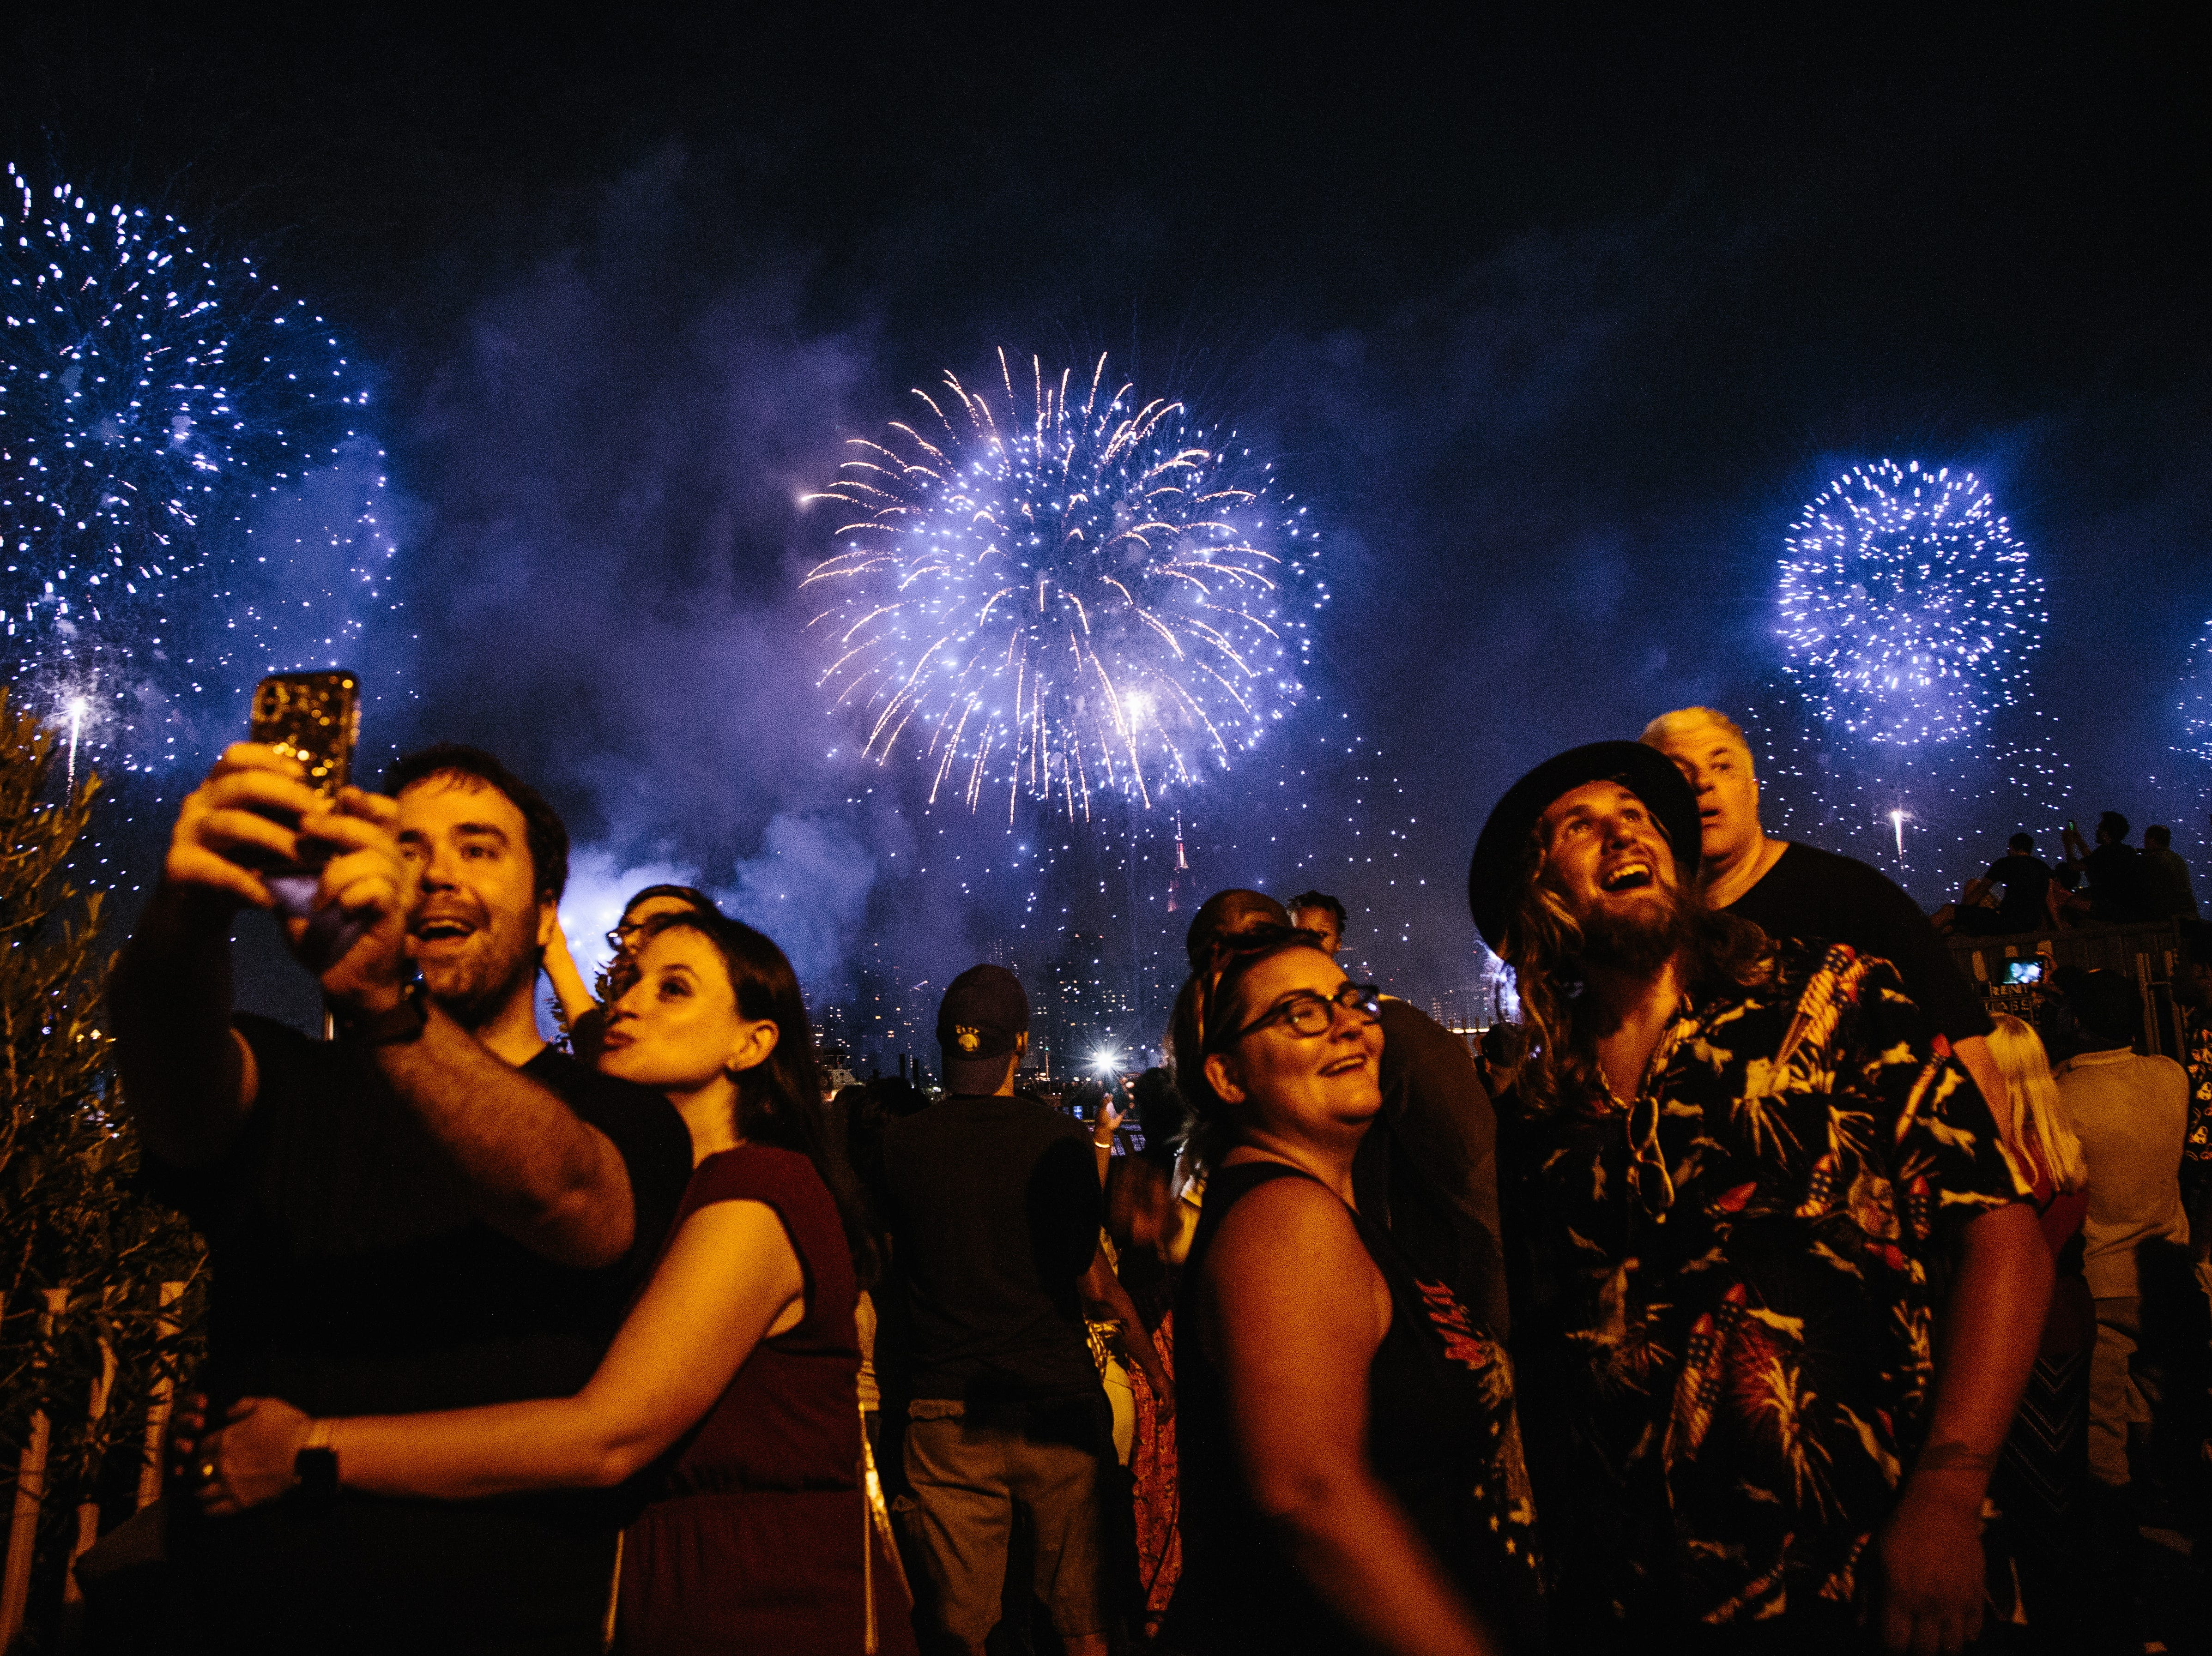 July 4, 2018: Fireworks explode over the East River as part of an Independence Day celebration in New York City.